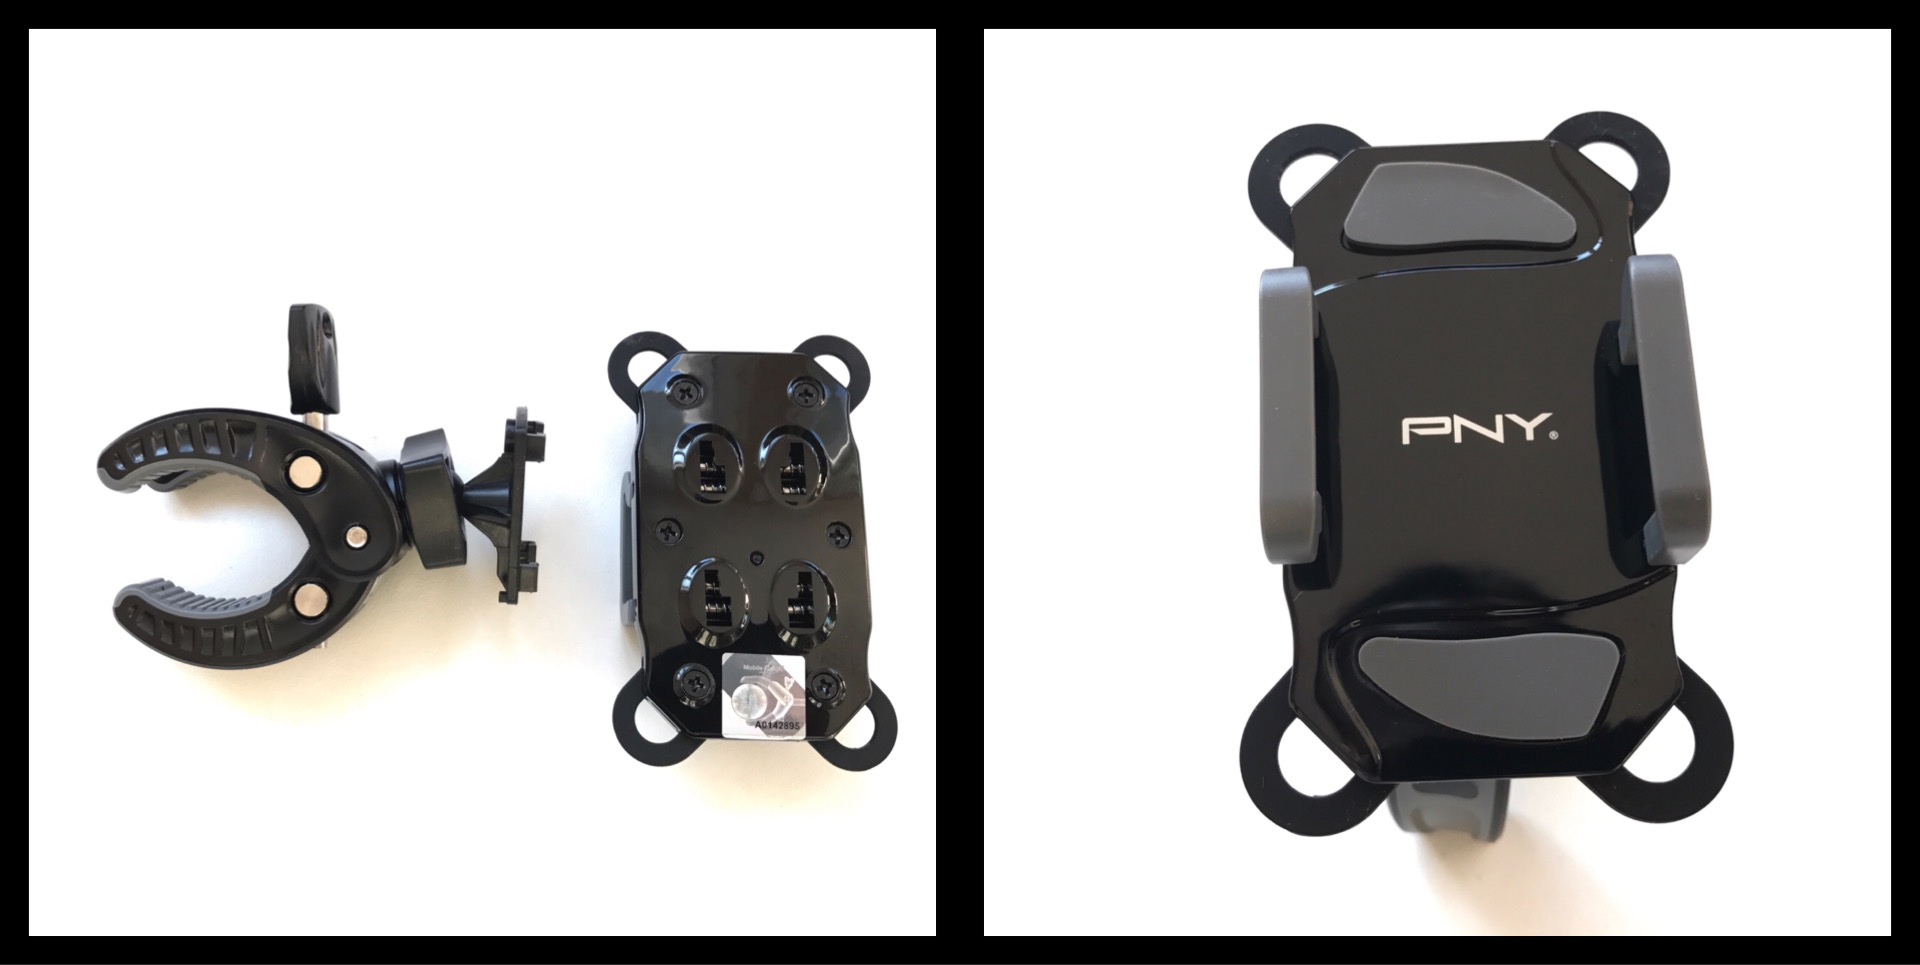 Le support vélo pour smartphone PNY Expand Bike Mount, 03 2017, Ph. Moctar KANE.